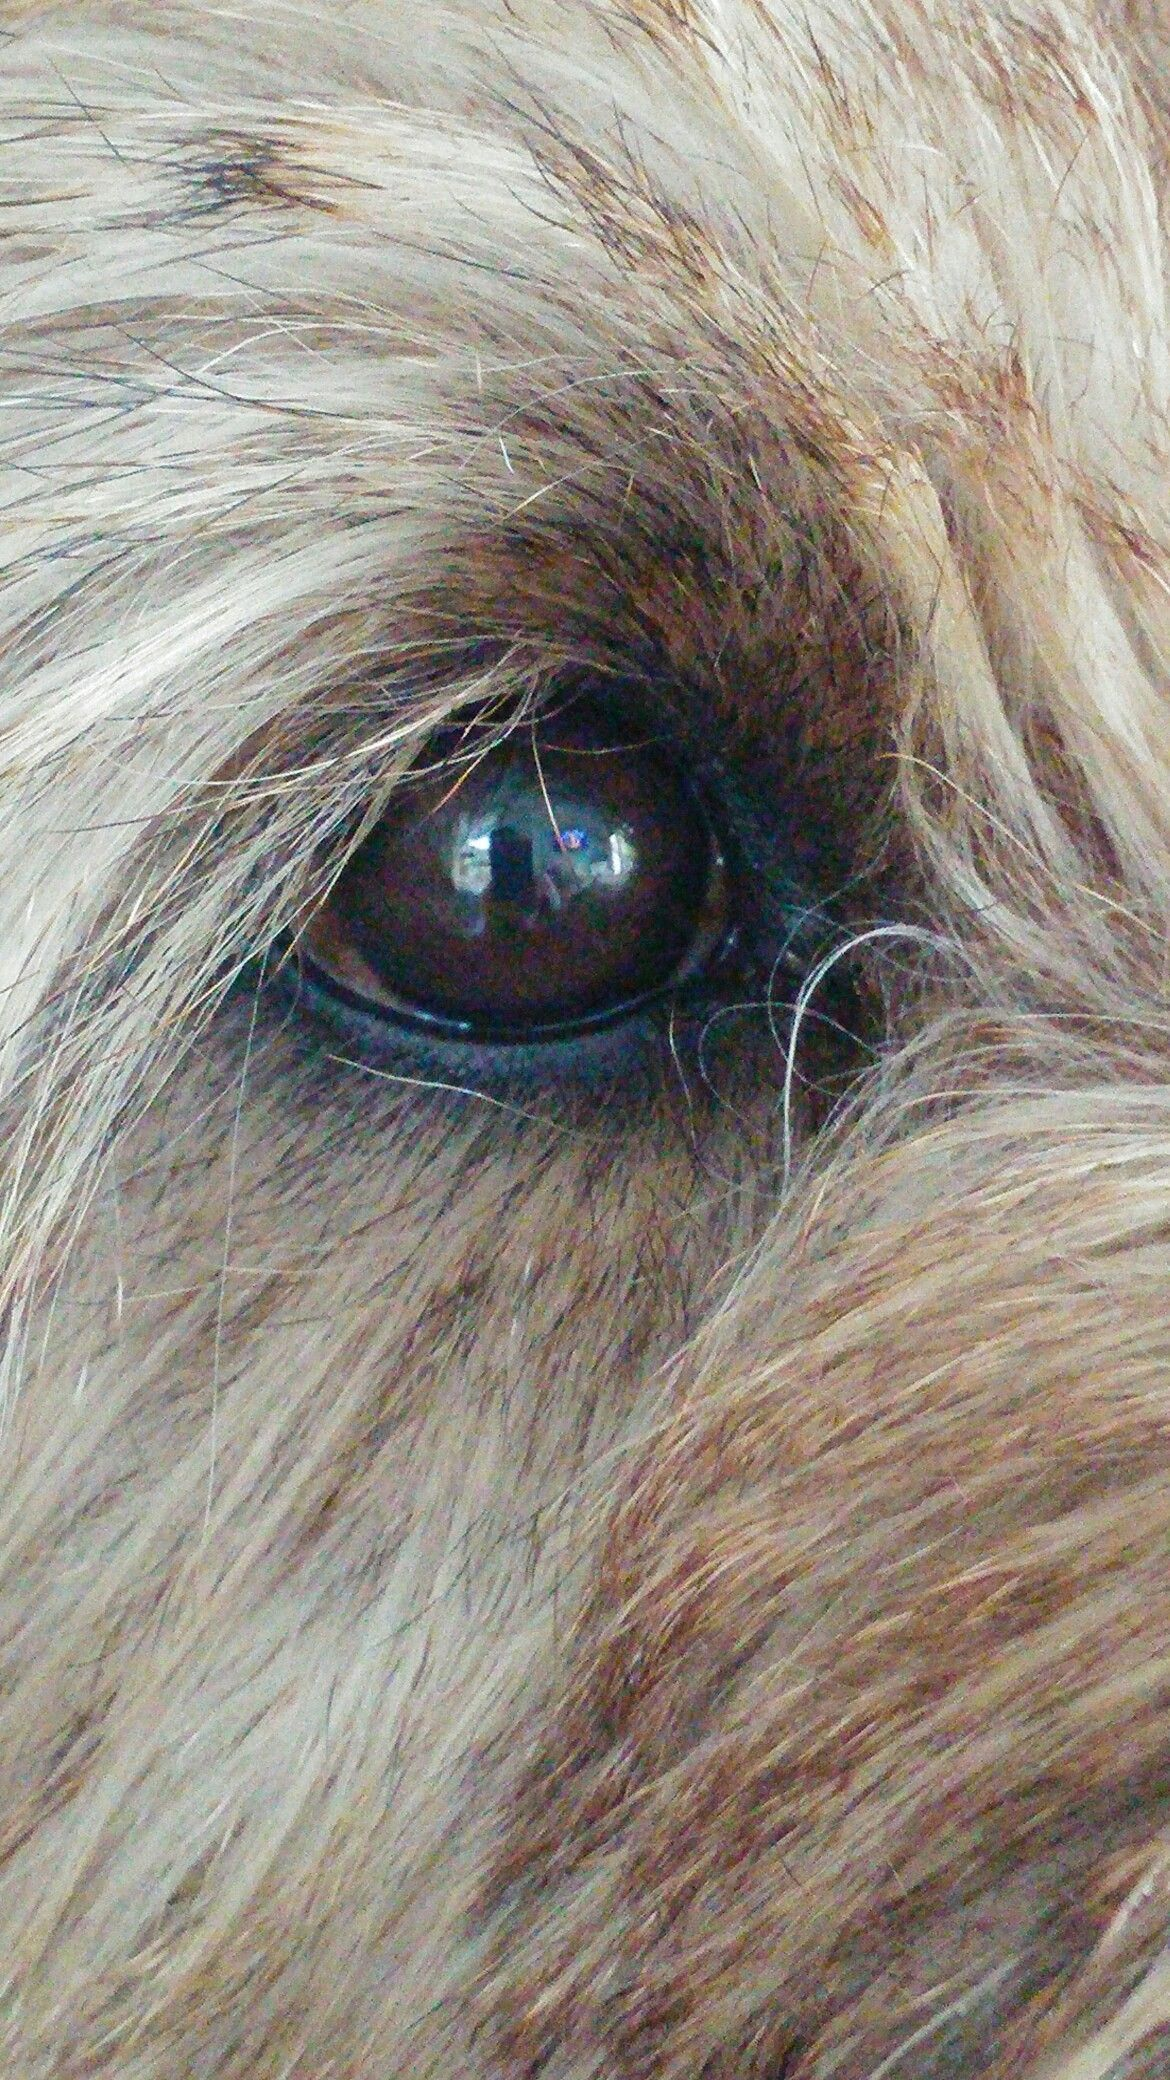 Pin By Mcclan On Cairn Terrier Yorkshire Terrier Puppies Norfolk Terrier Yorkshire Terrier Puppy Yorkie